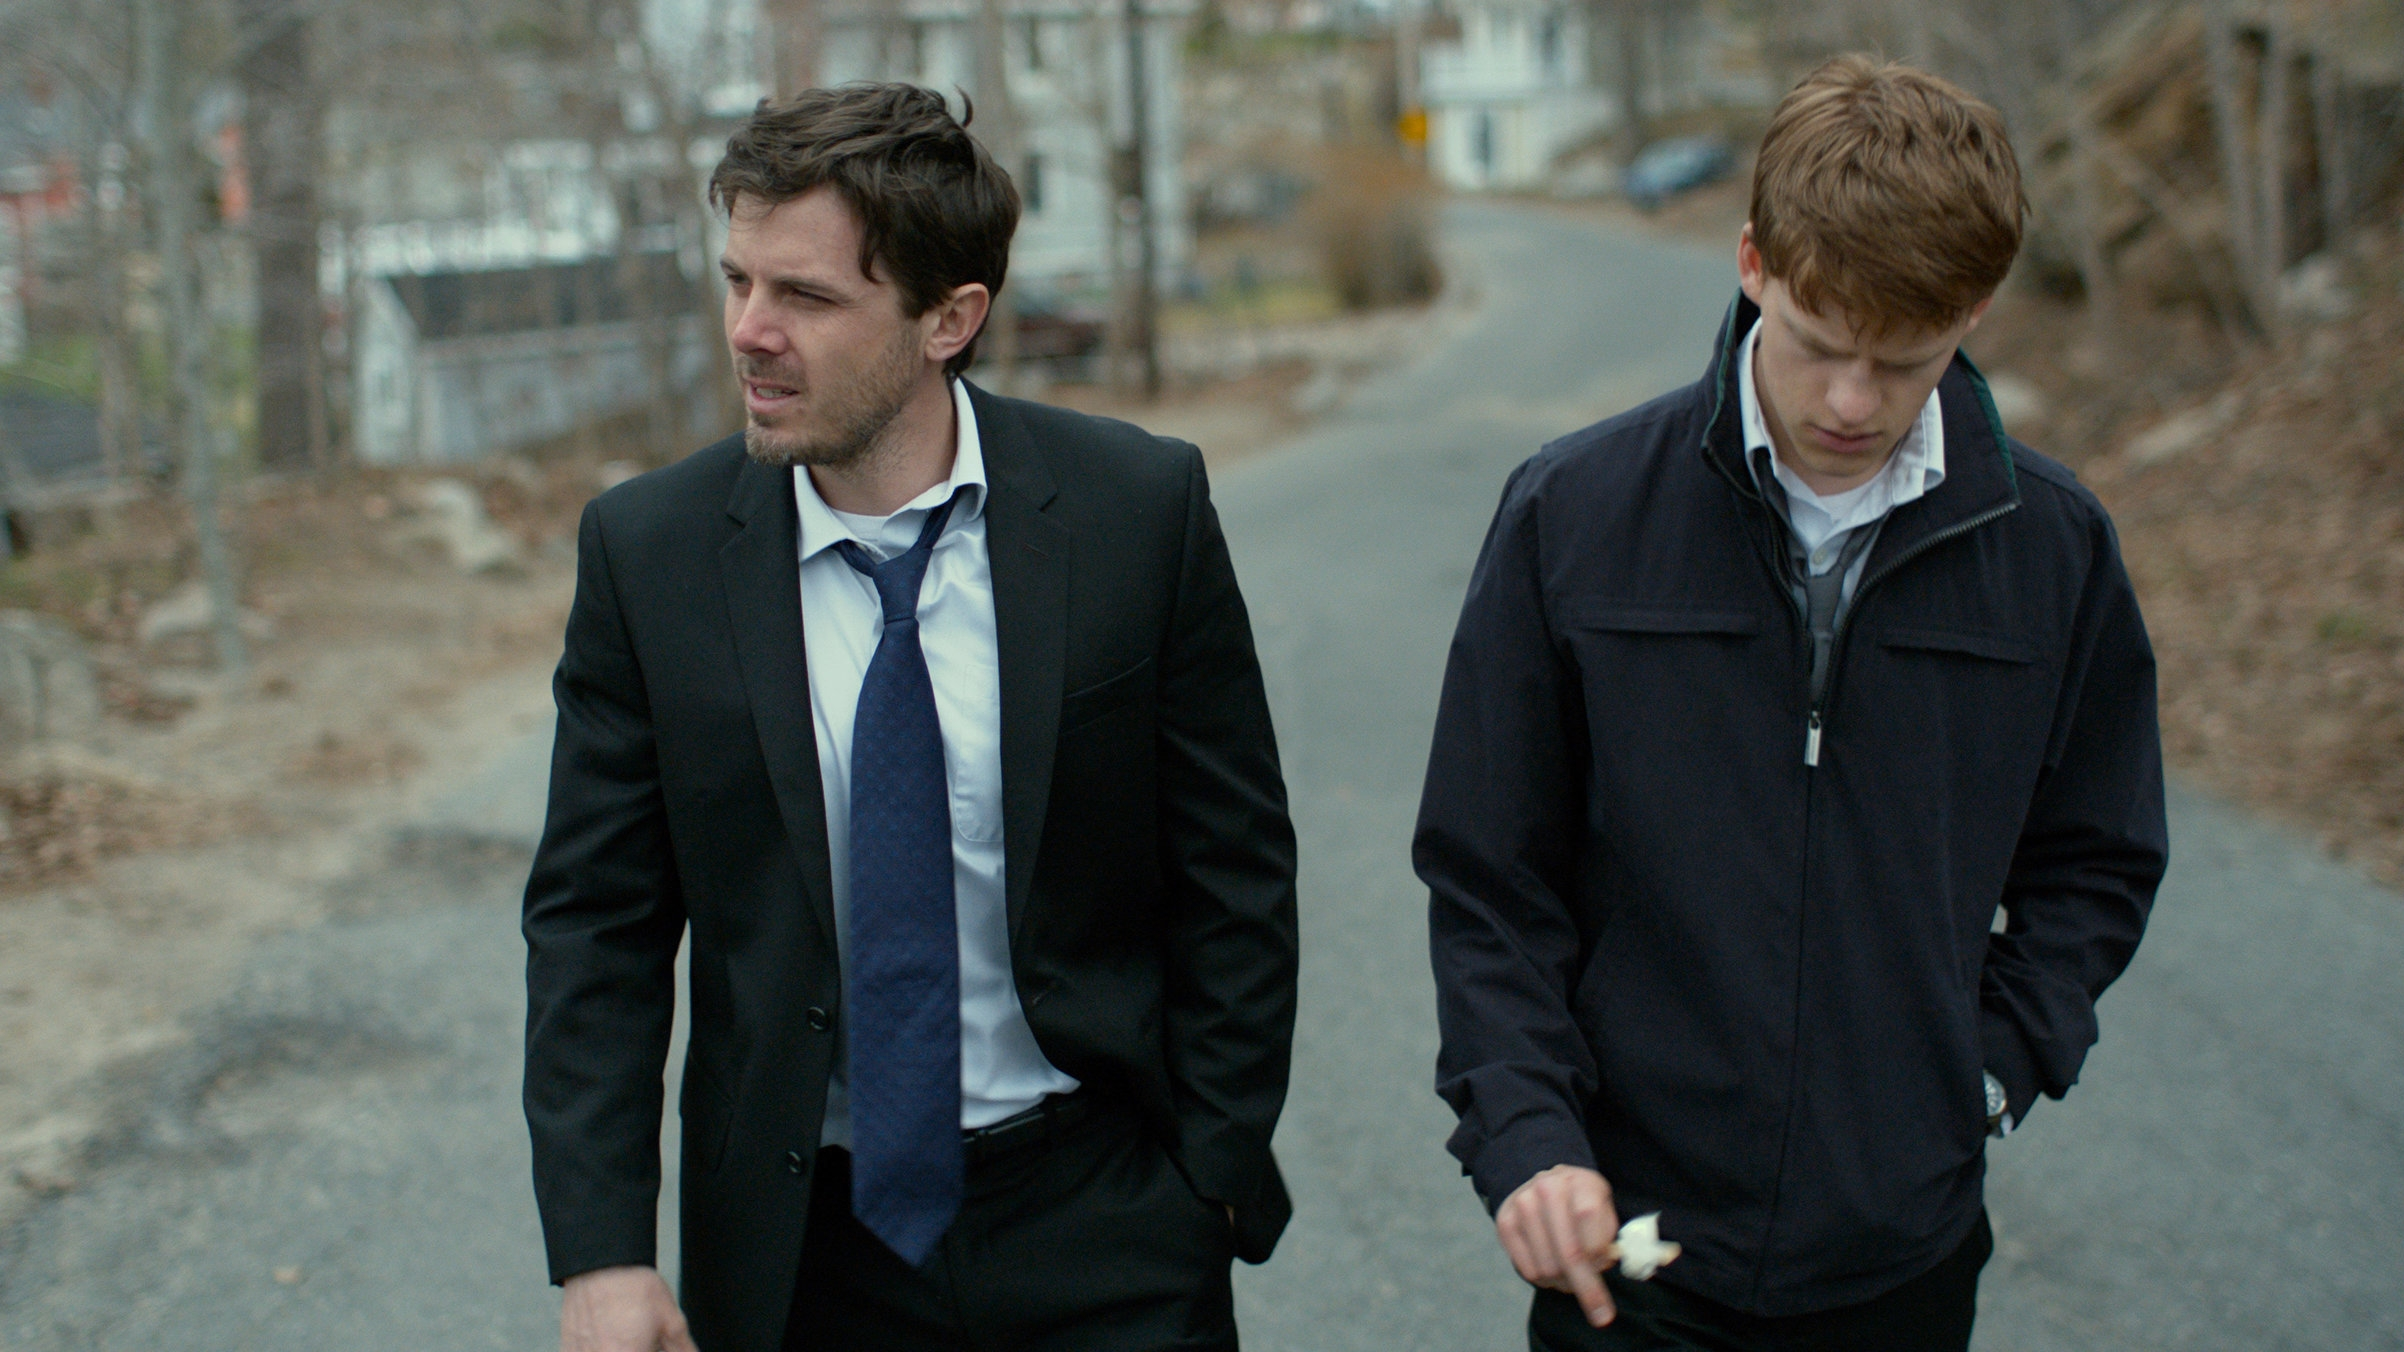 Manchester By The Sea (2016) - Directed by: Kenneth LonerganWritten by: Kenneth Lonergan